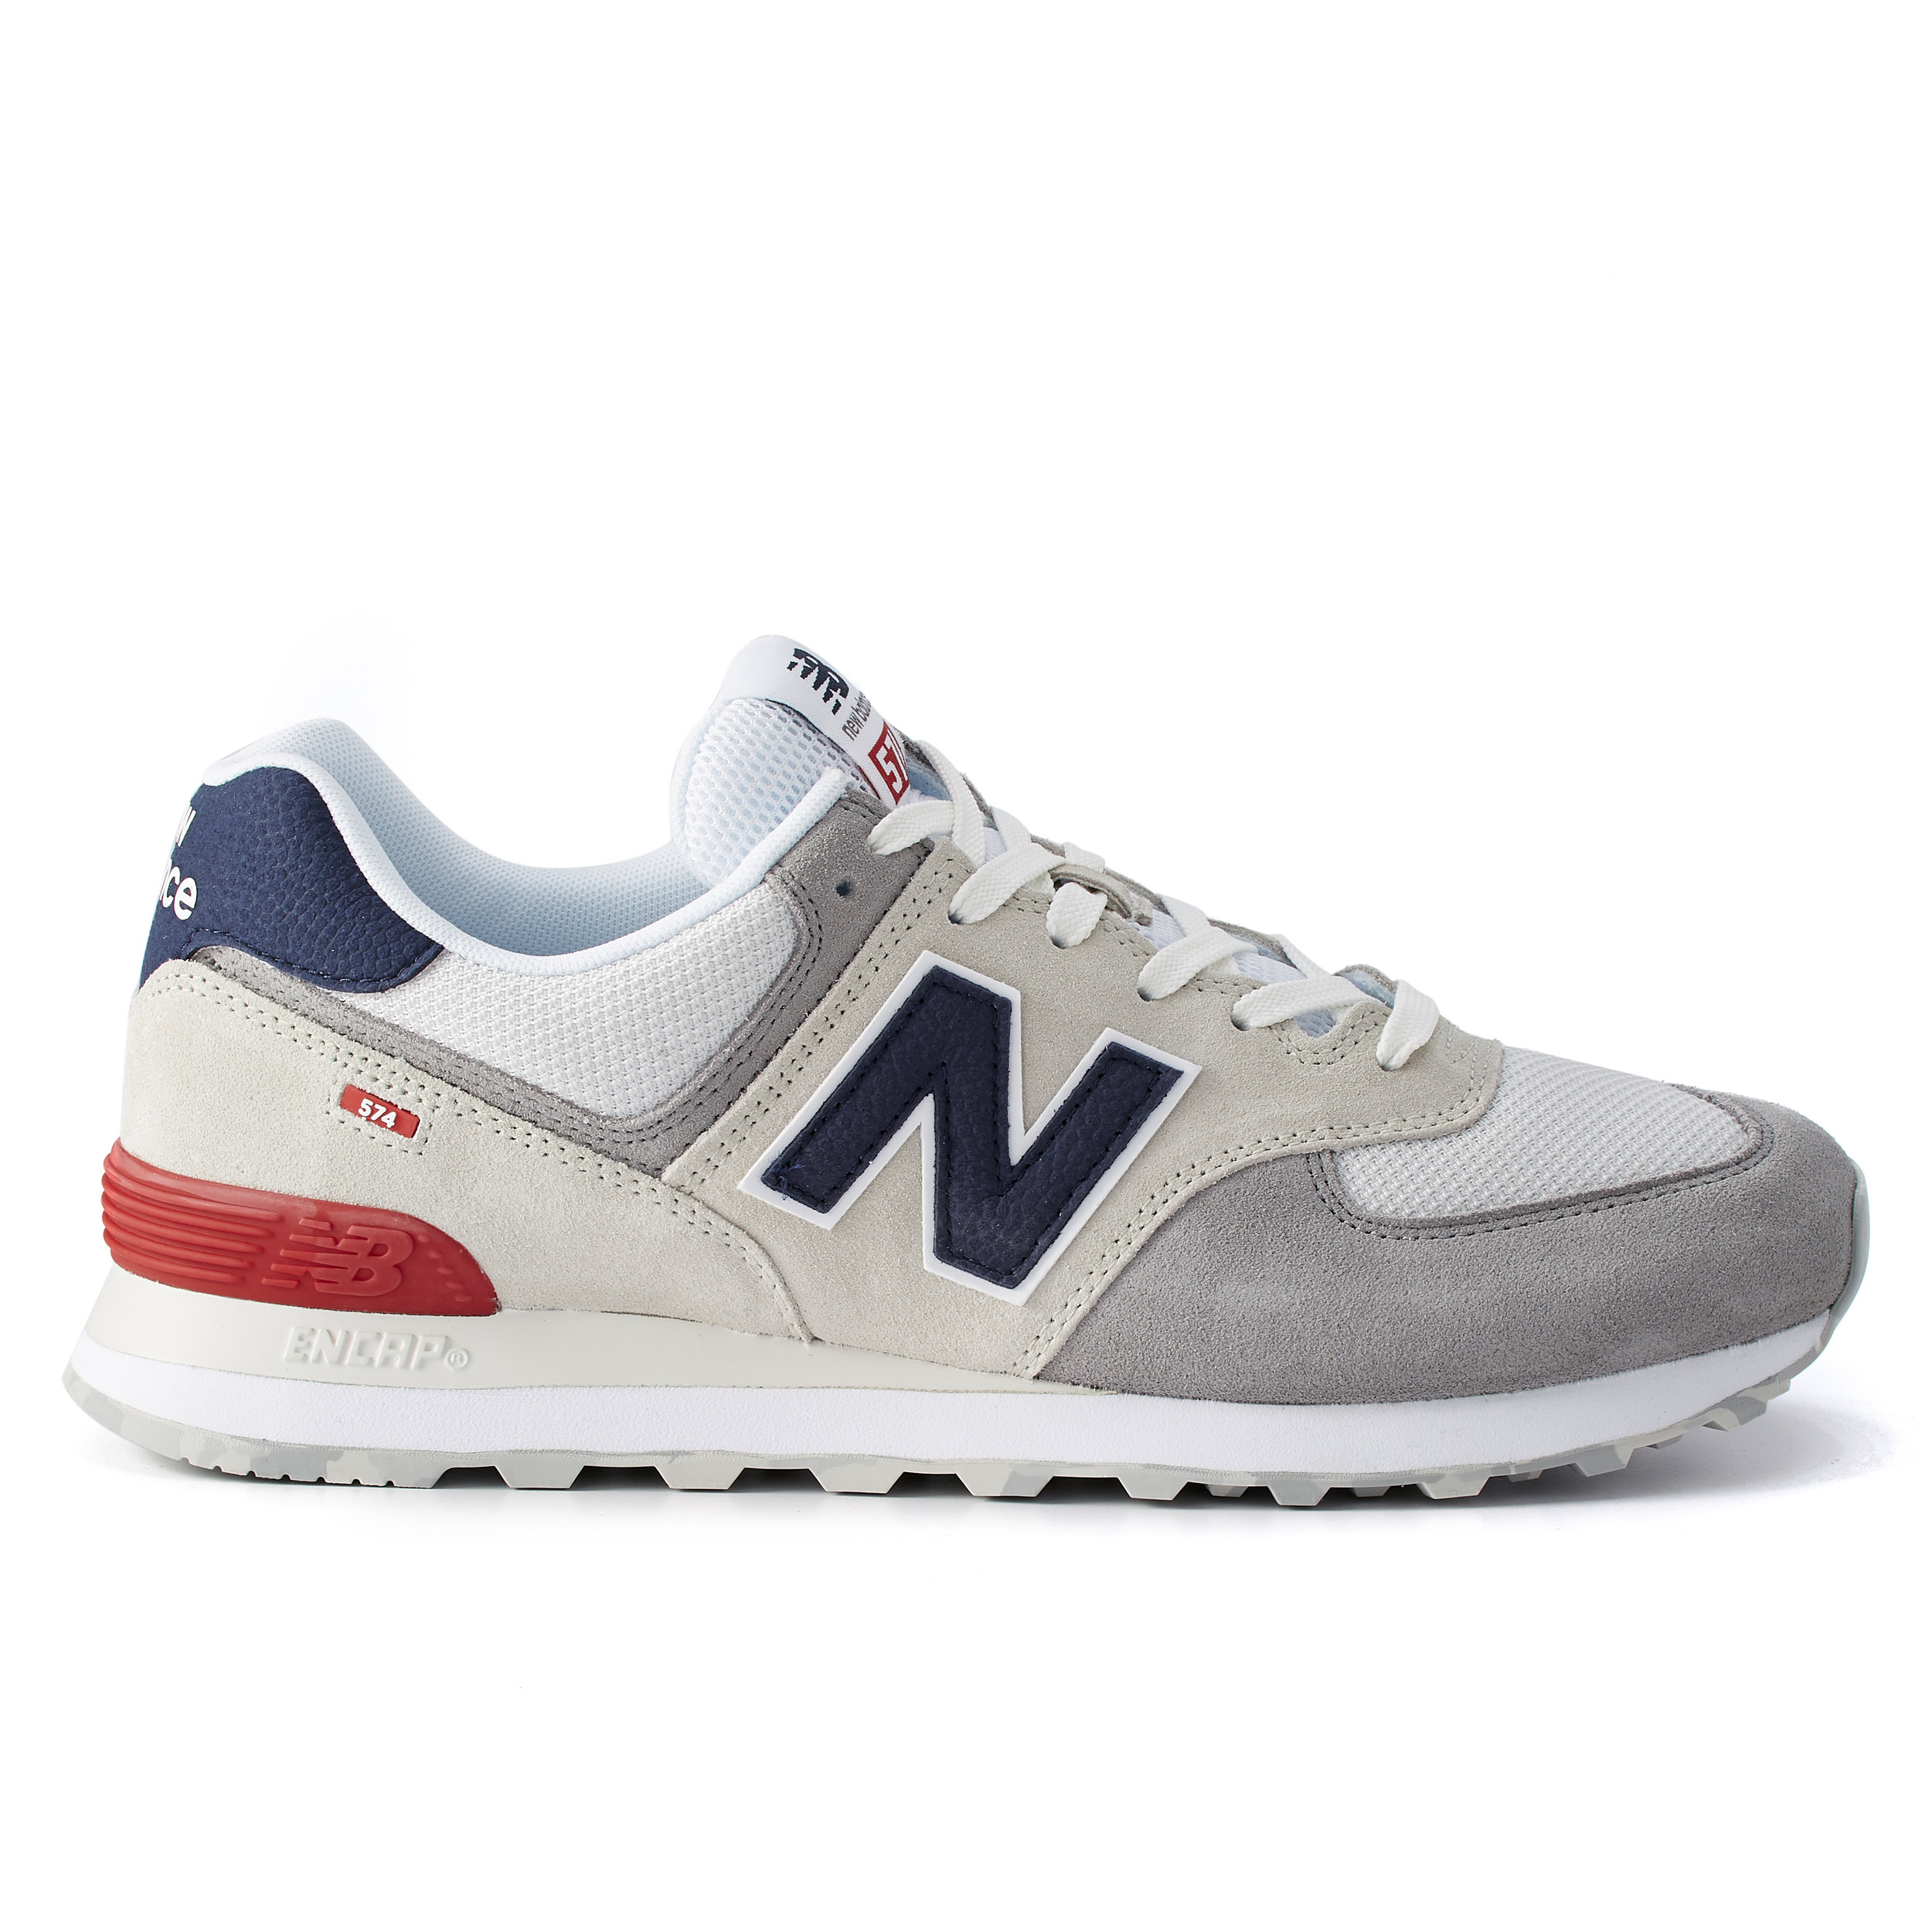 New Balance Marbled 574 - I usually wear my New Balance 996's but picked up a pair of the Marbled 574's right before I left.